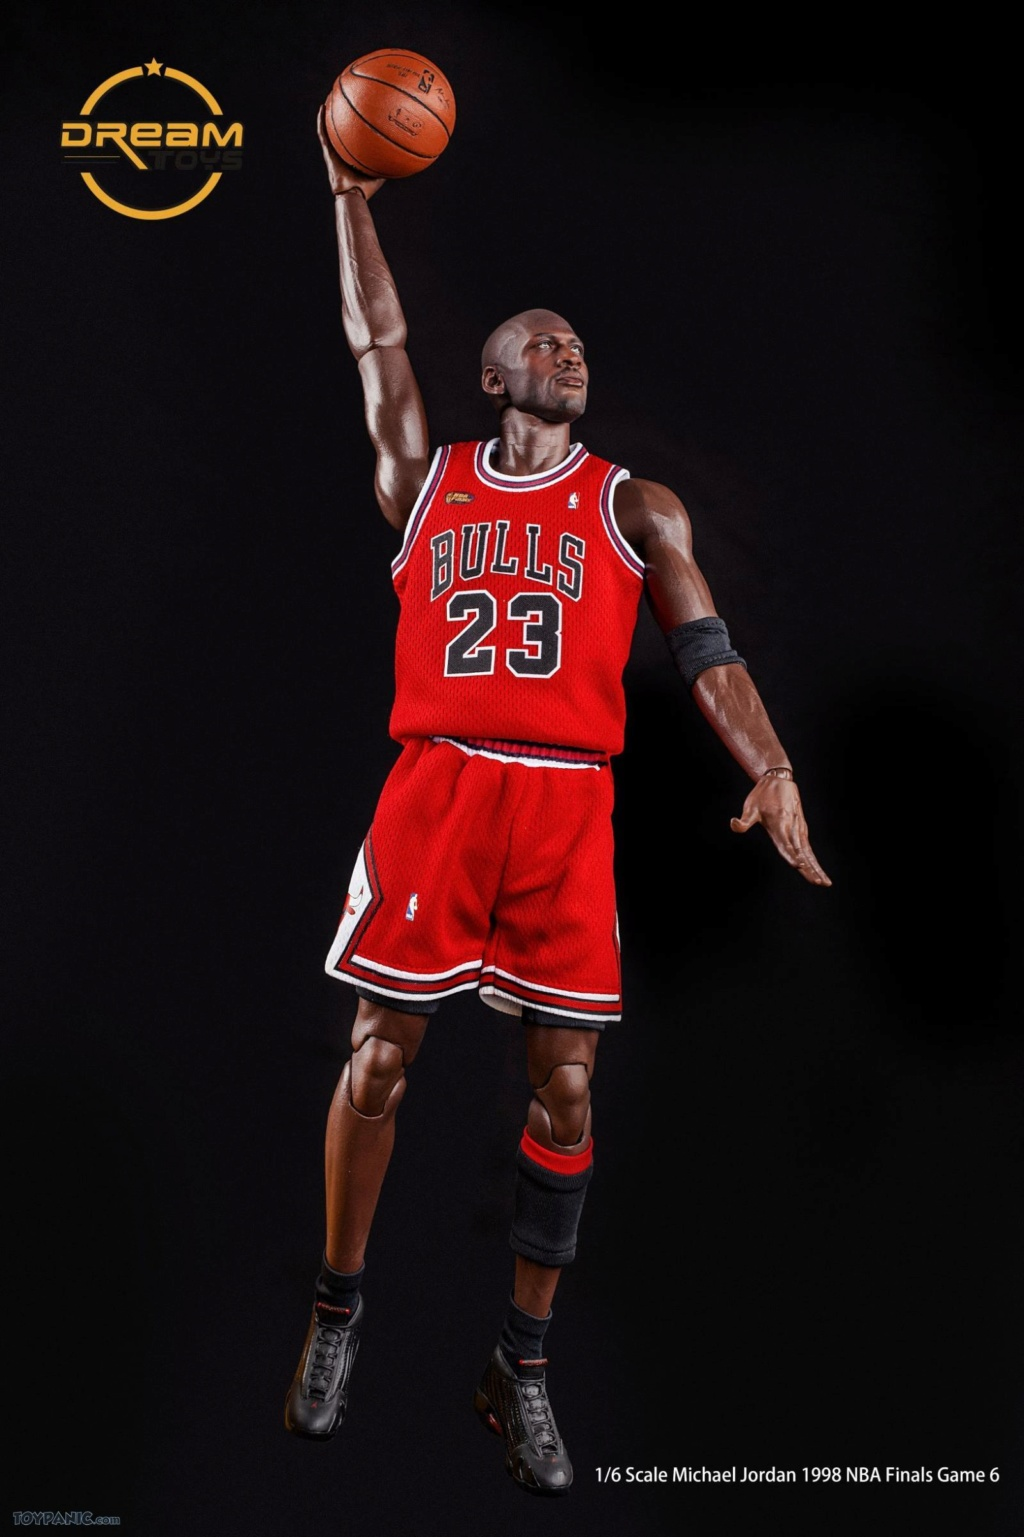 athlete - NEW PRODUCT: DreamToys: NBA Finals Jordan, Bryant, & James 1/6 scale action figures 11420219